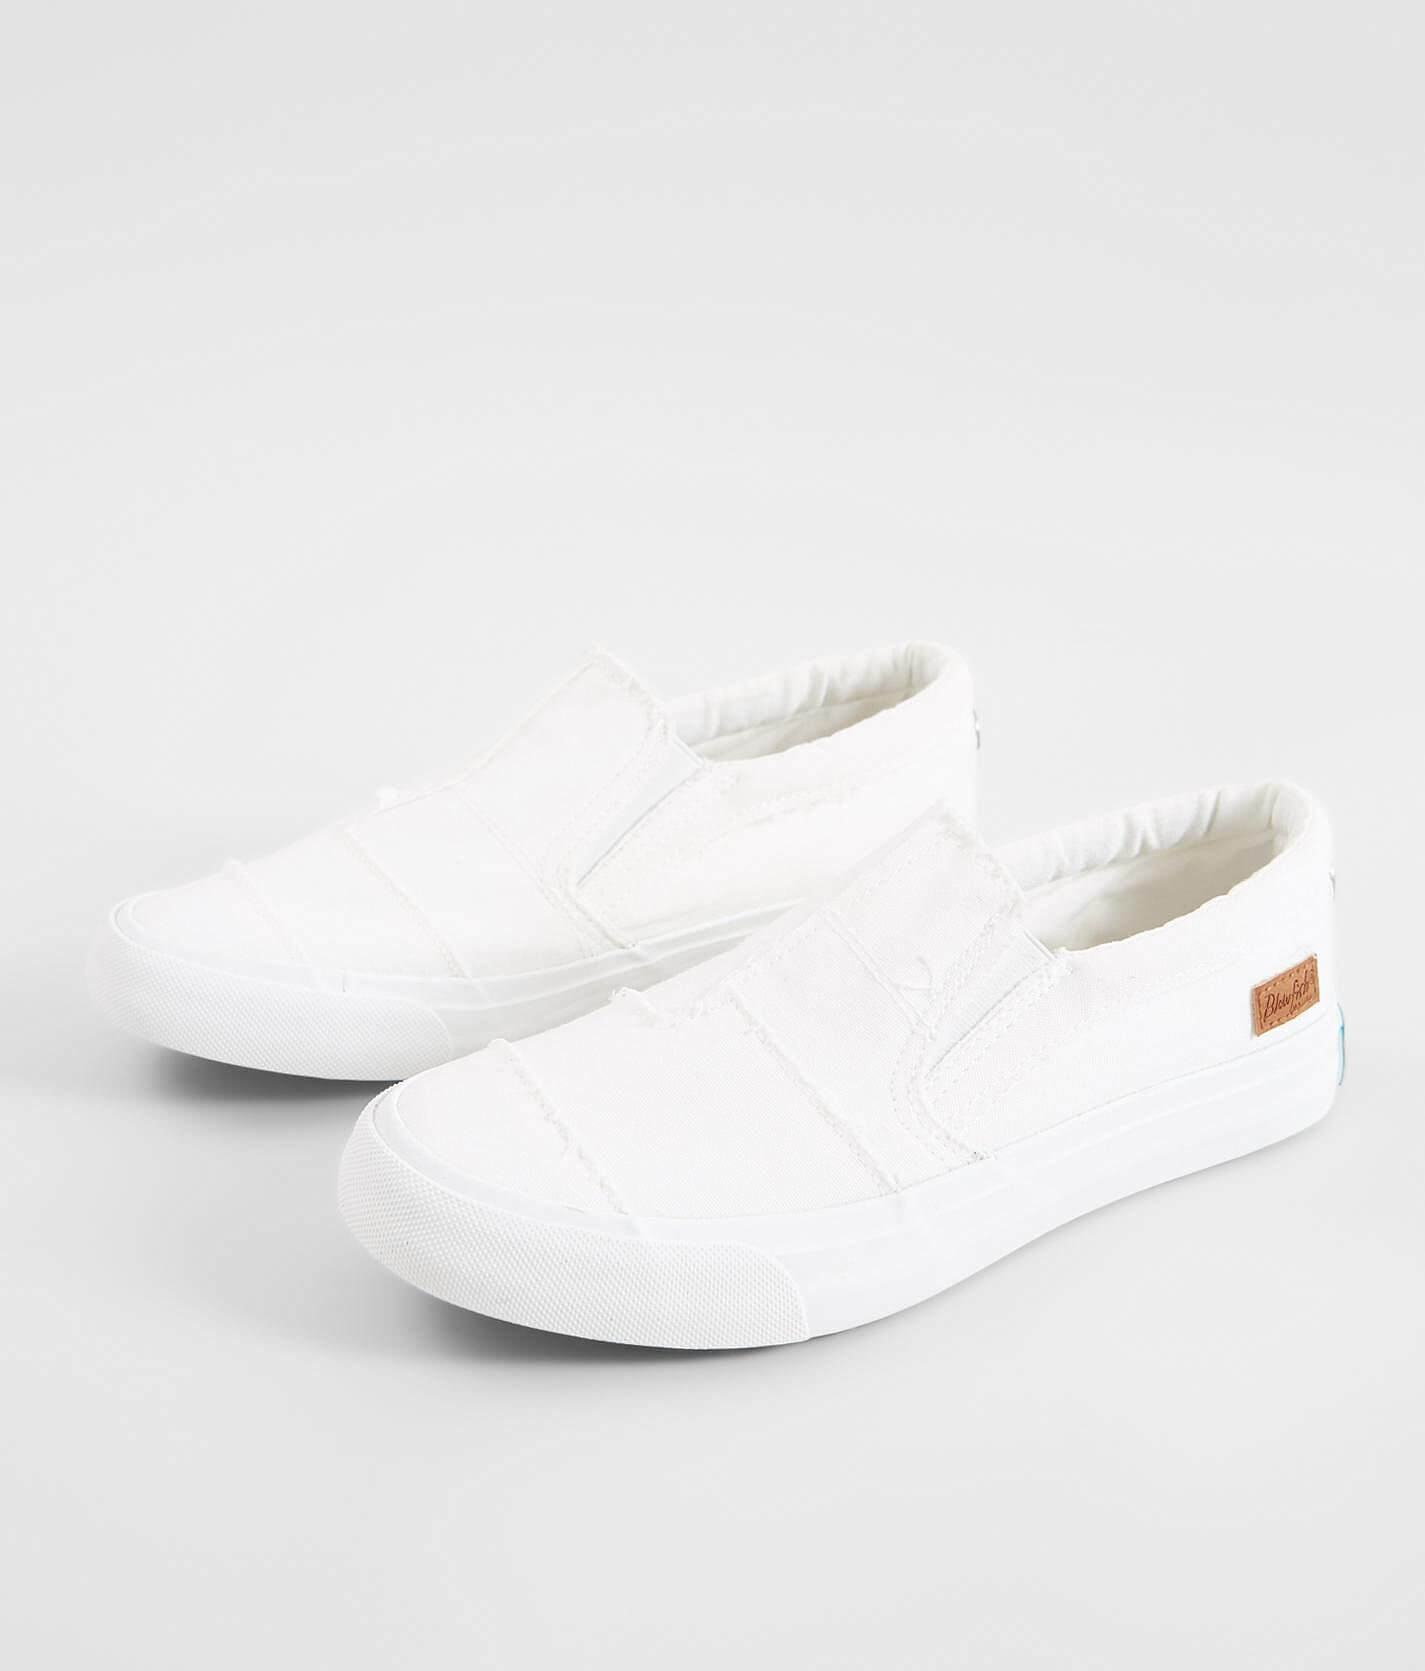 Maddox Canvas Shoe by Blowfish